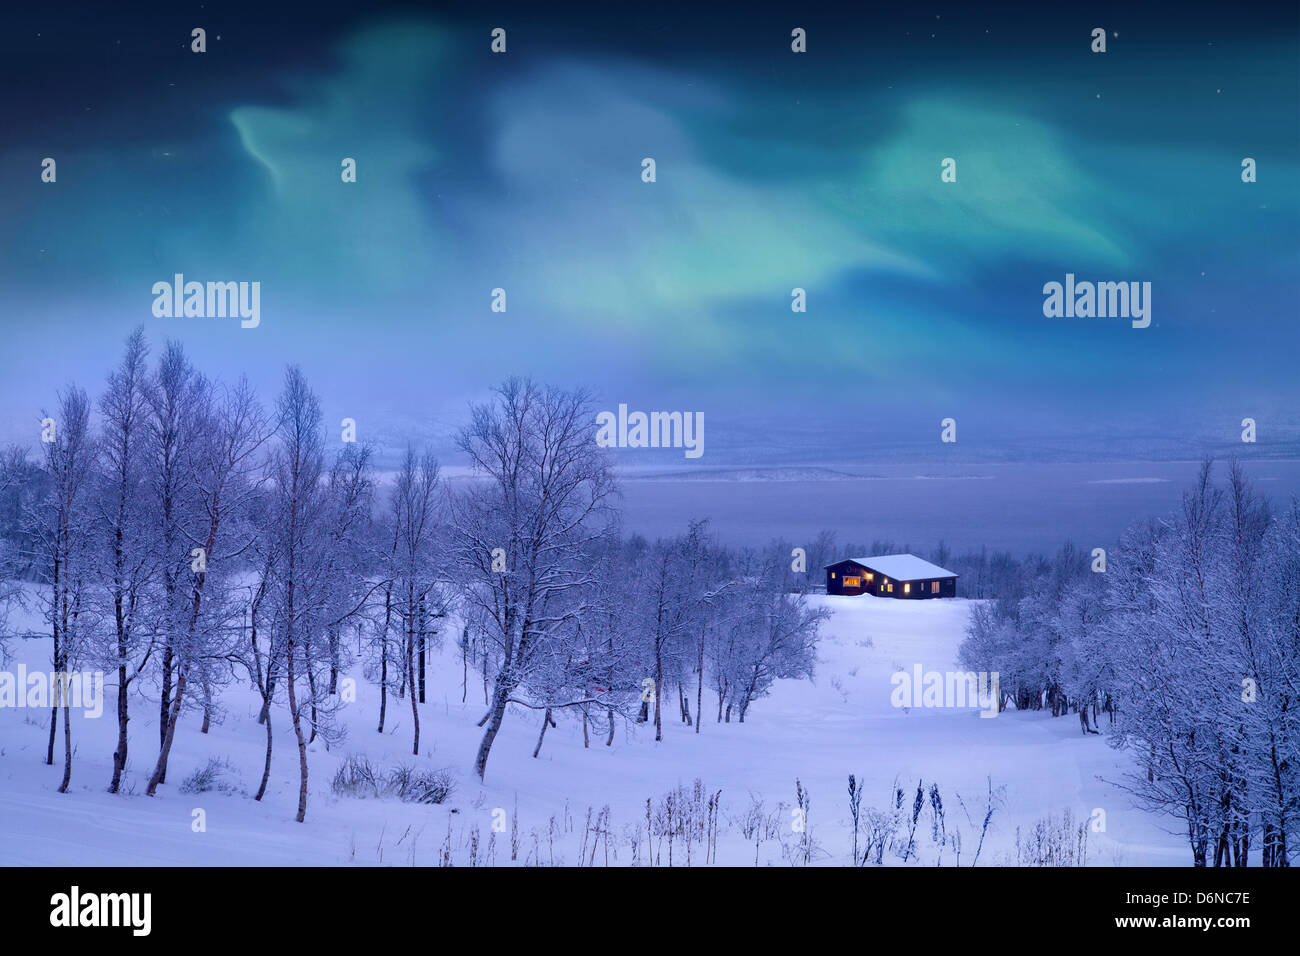 Log cabin at Winter with Northern lights, trees and snow. - Stock Image